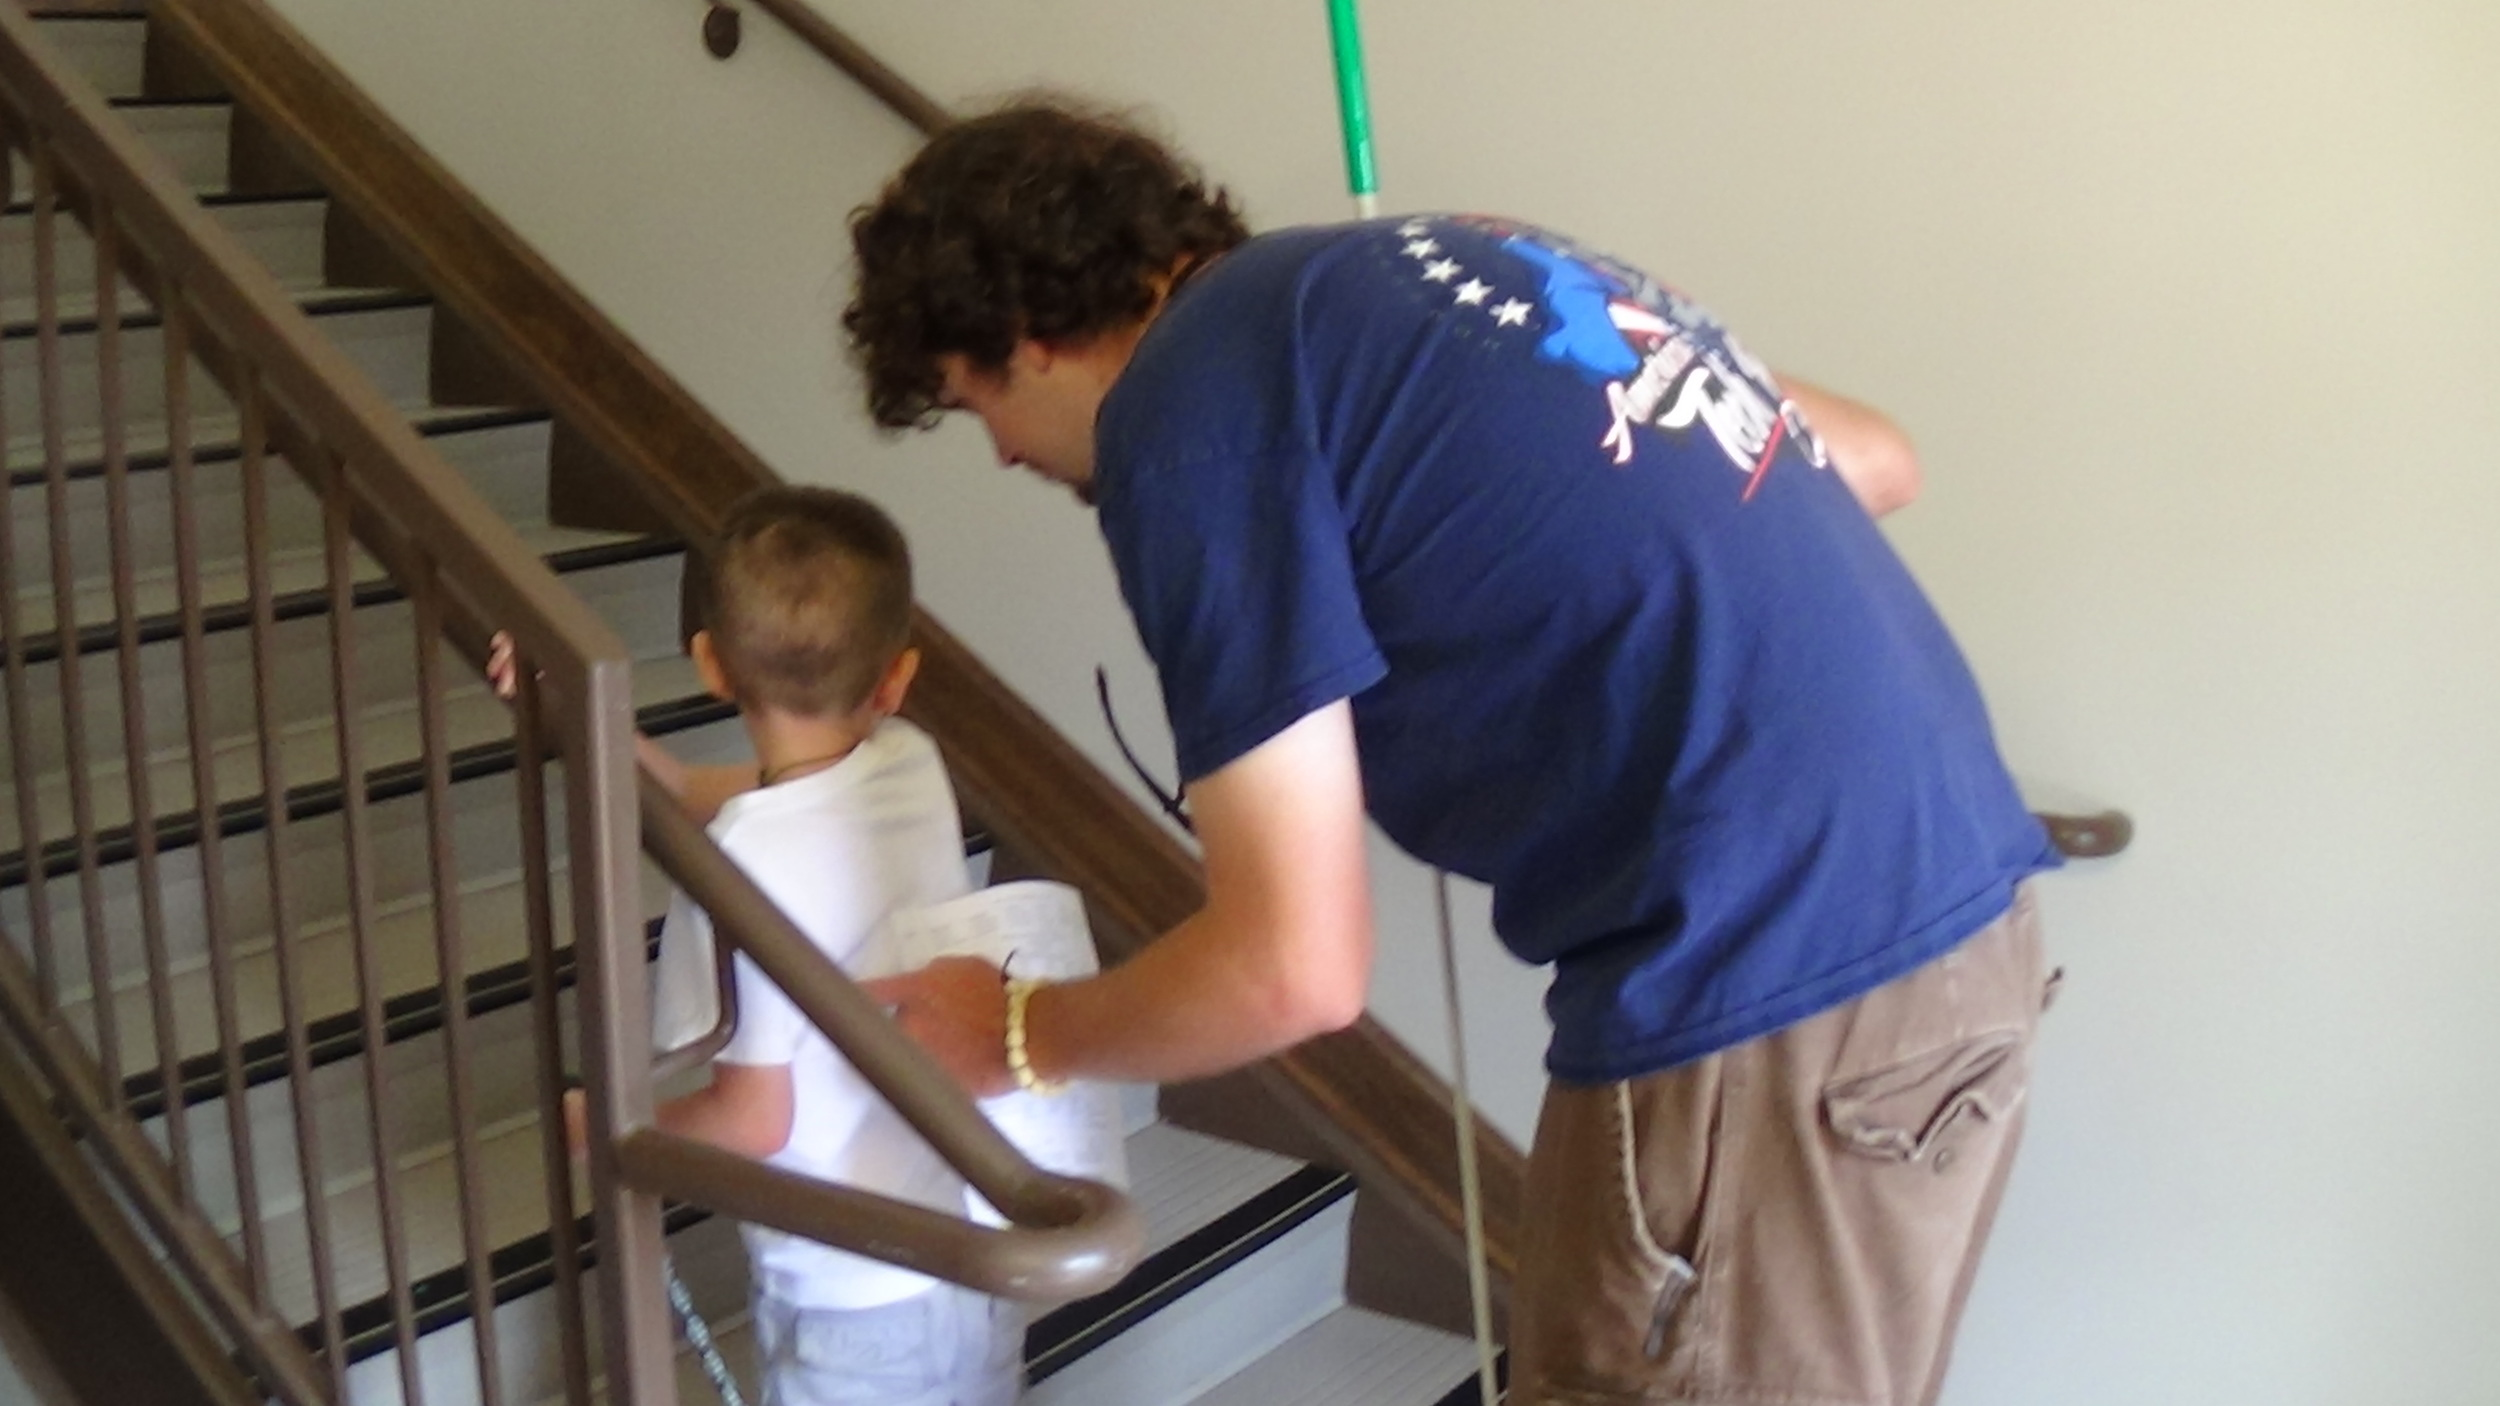 Justin gives Jordan guidance on climbing the stairs